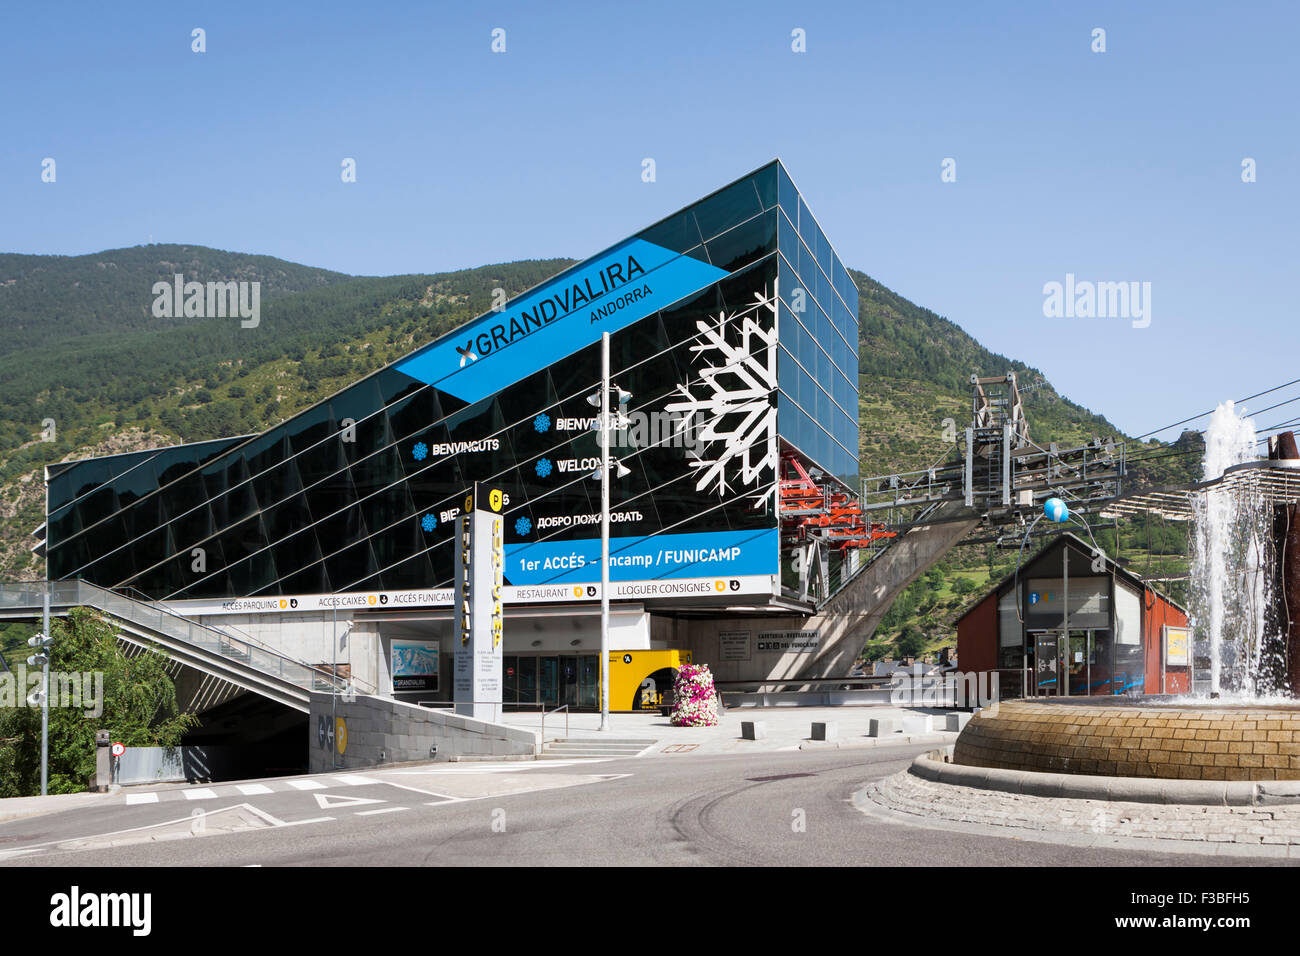 Encamp Cable Car Acces Stock Photo, Royalty Free Image: 88149521 - Alamy